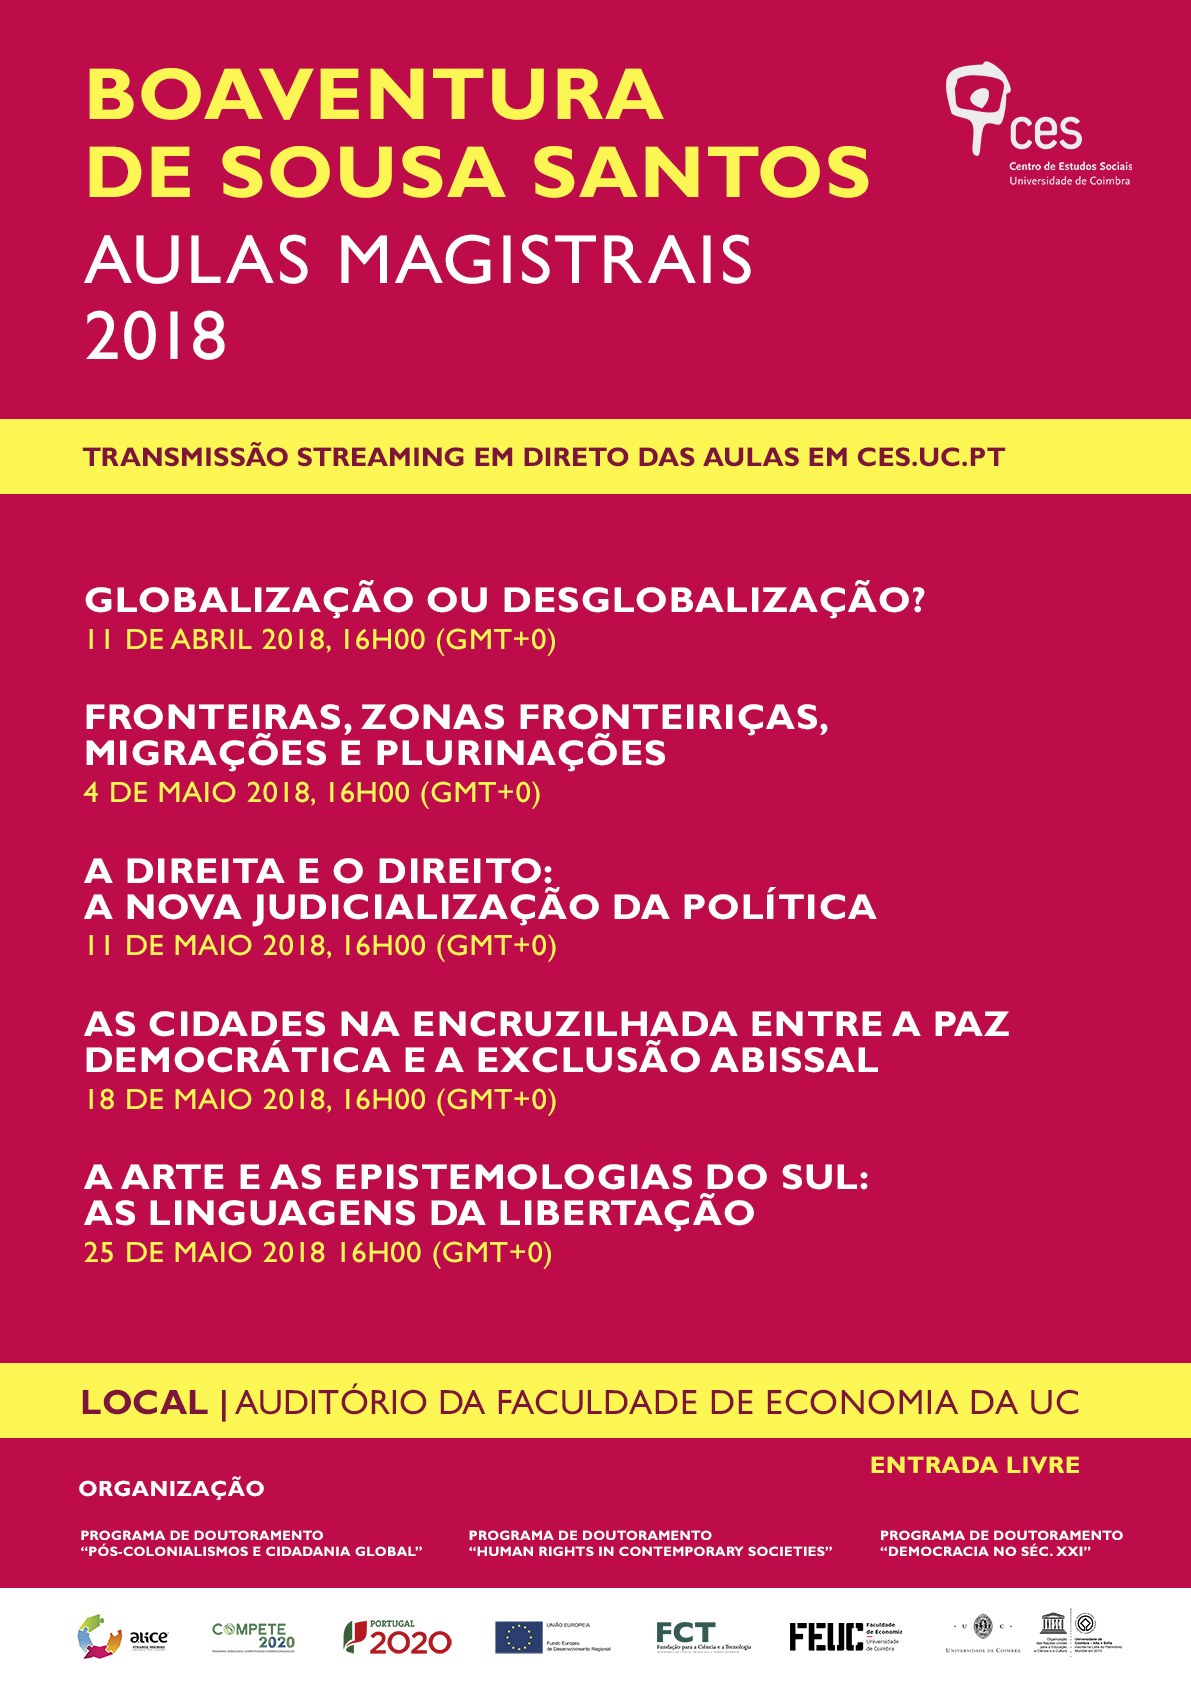 """The Right and the Law: the new judicialization of politics<span id=""""edit_18826""""><script>$(function() { $('#edit_18826').load( """"/myces/user/editobj.php?tipo=evento&id=18826"""" ); });</script></span>"""